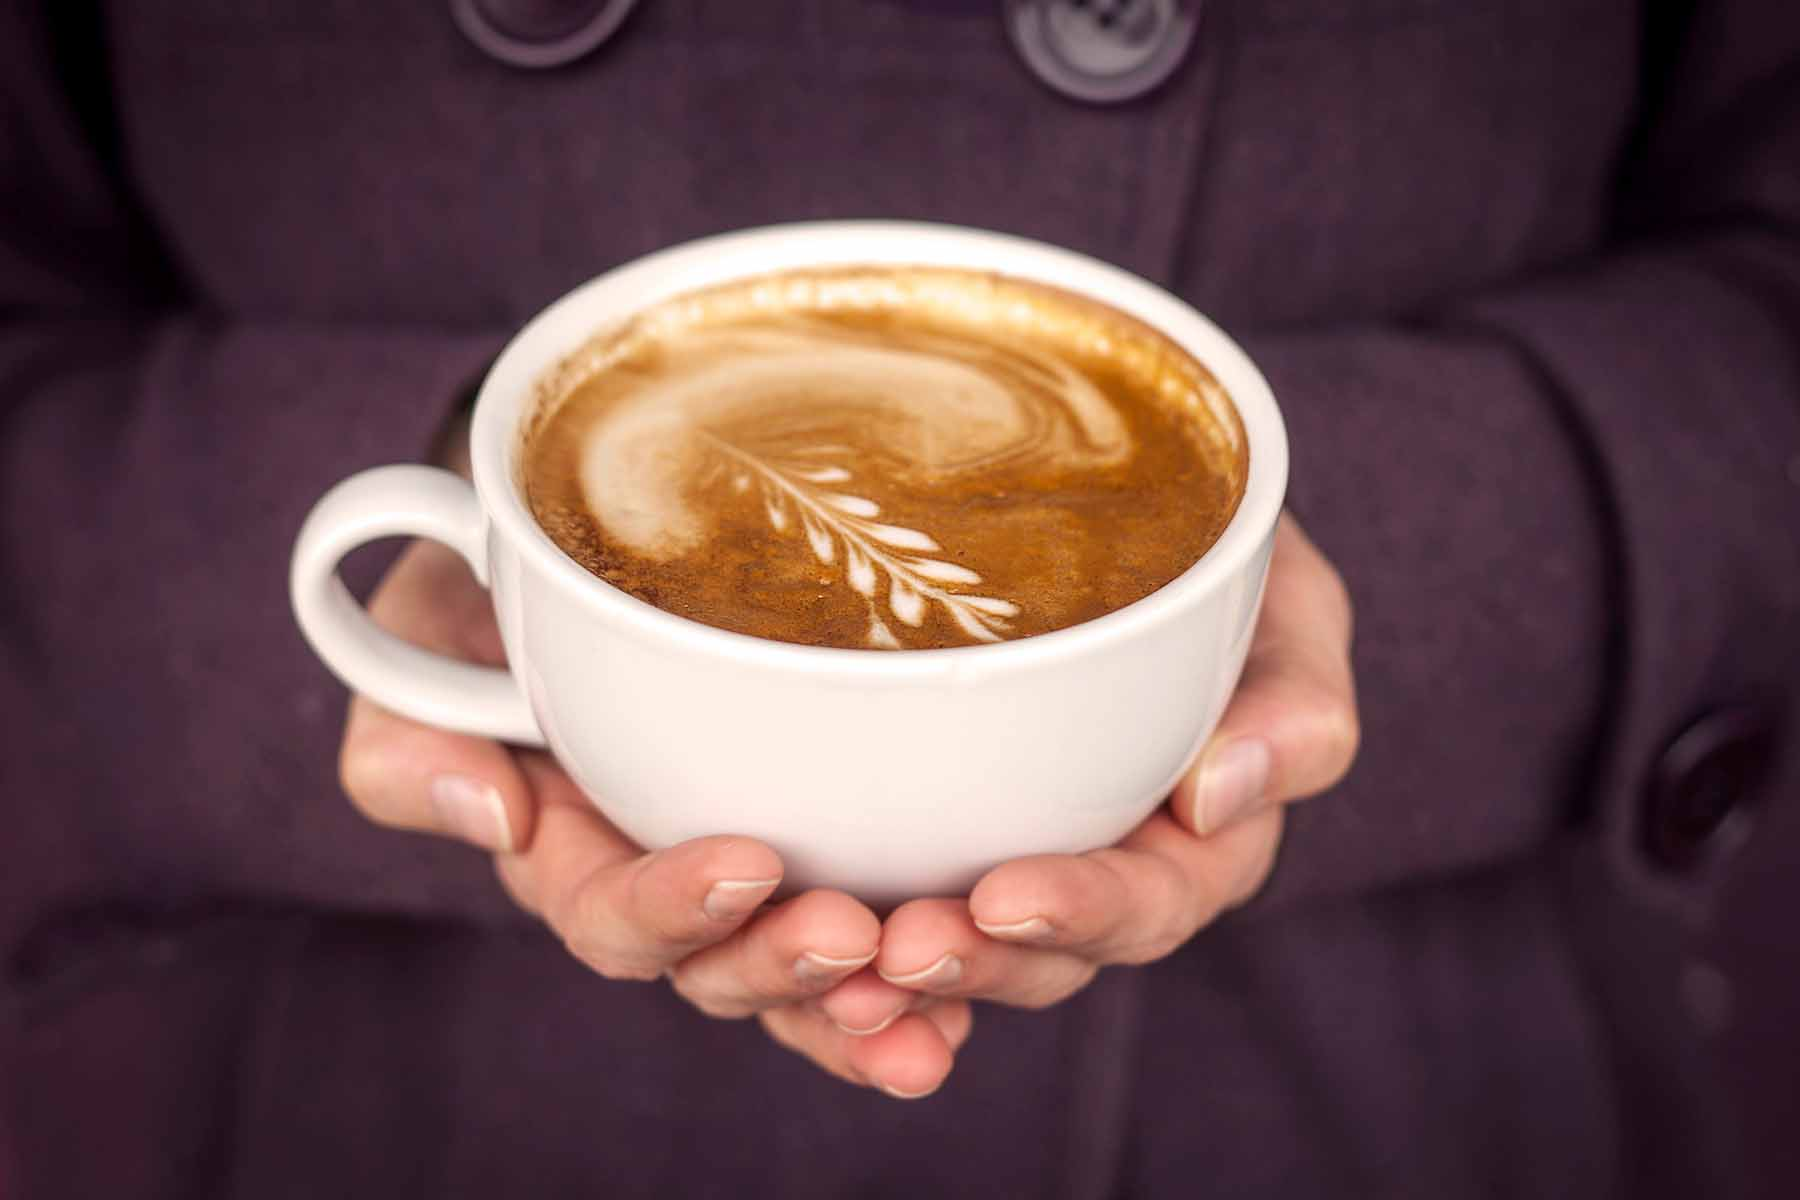 Stock photograph taken of a latte created at Donkey Coffee and Espresso in Athens, Ohio on Jan. 15, 2016